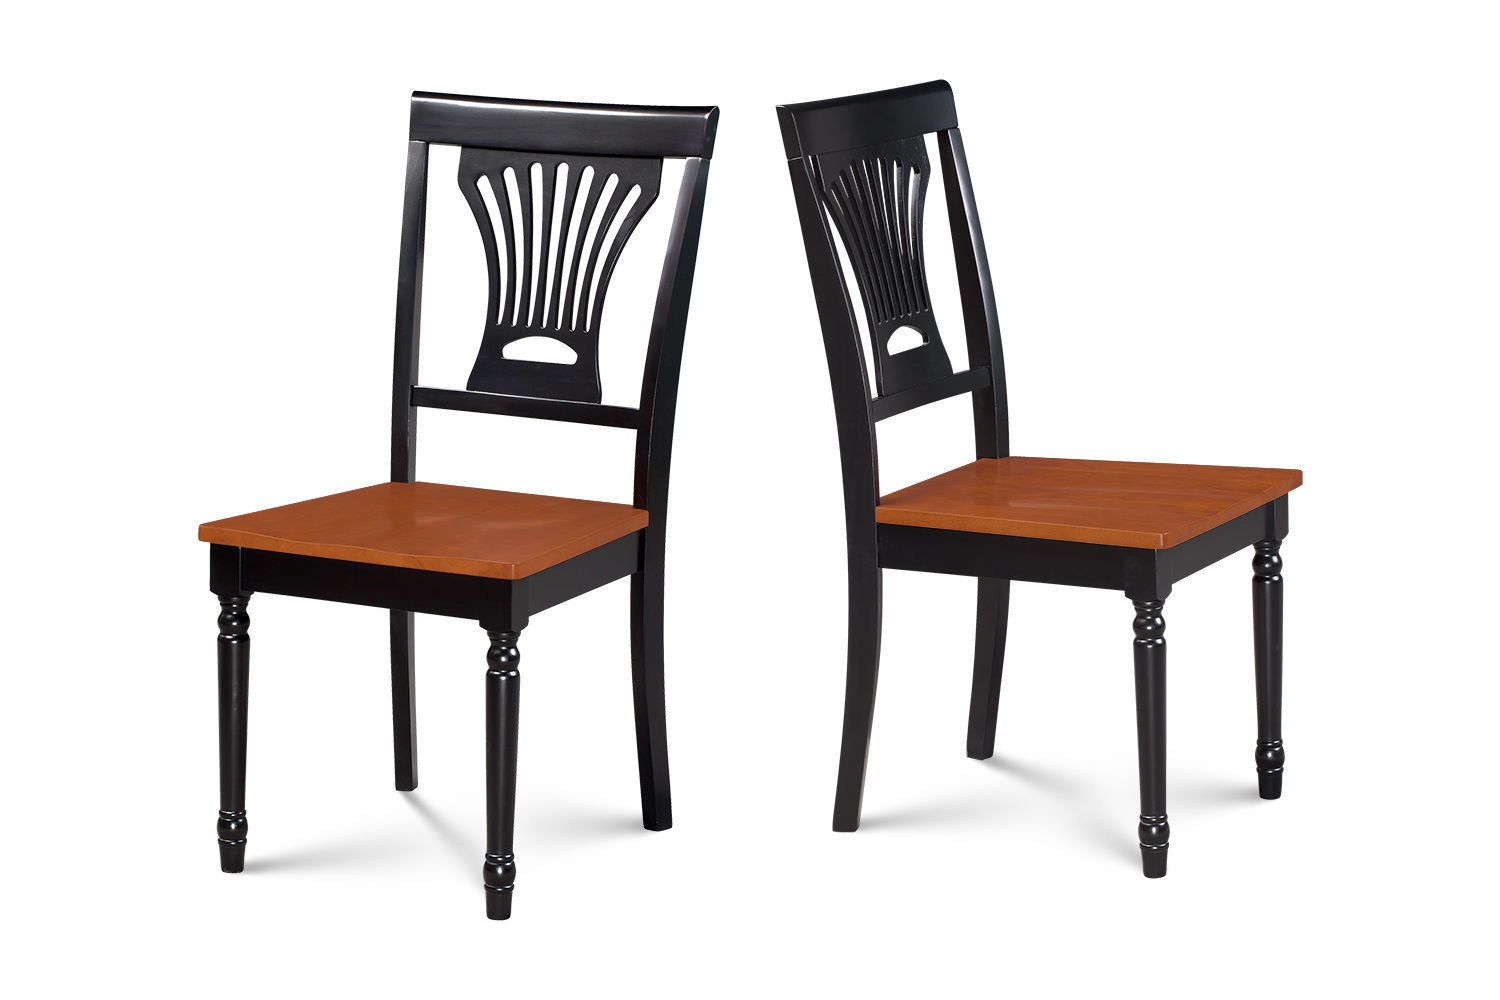 SET OF 4 SOMERVILLE KITCHEN DINING ROOM  WOODEN SEAT CHAIRS  IN BLACK & CHERRY